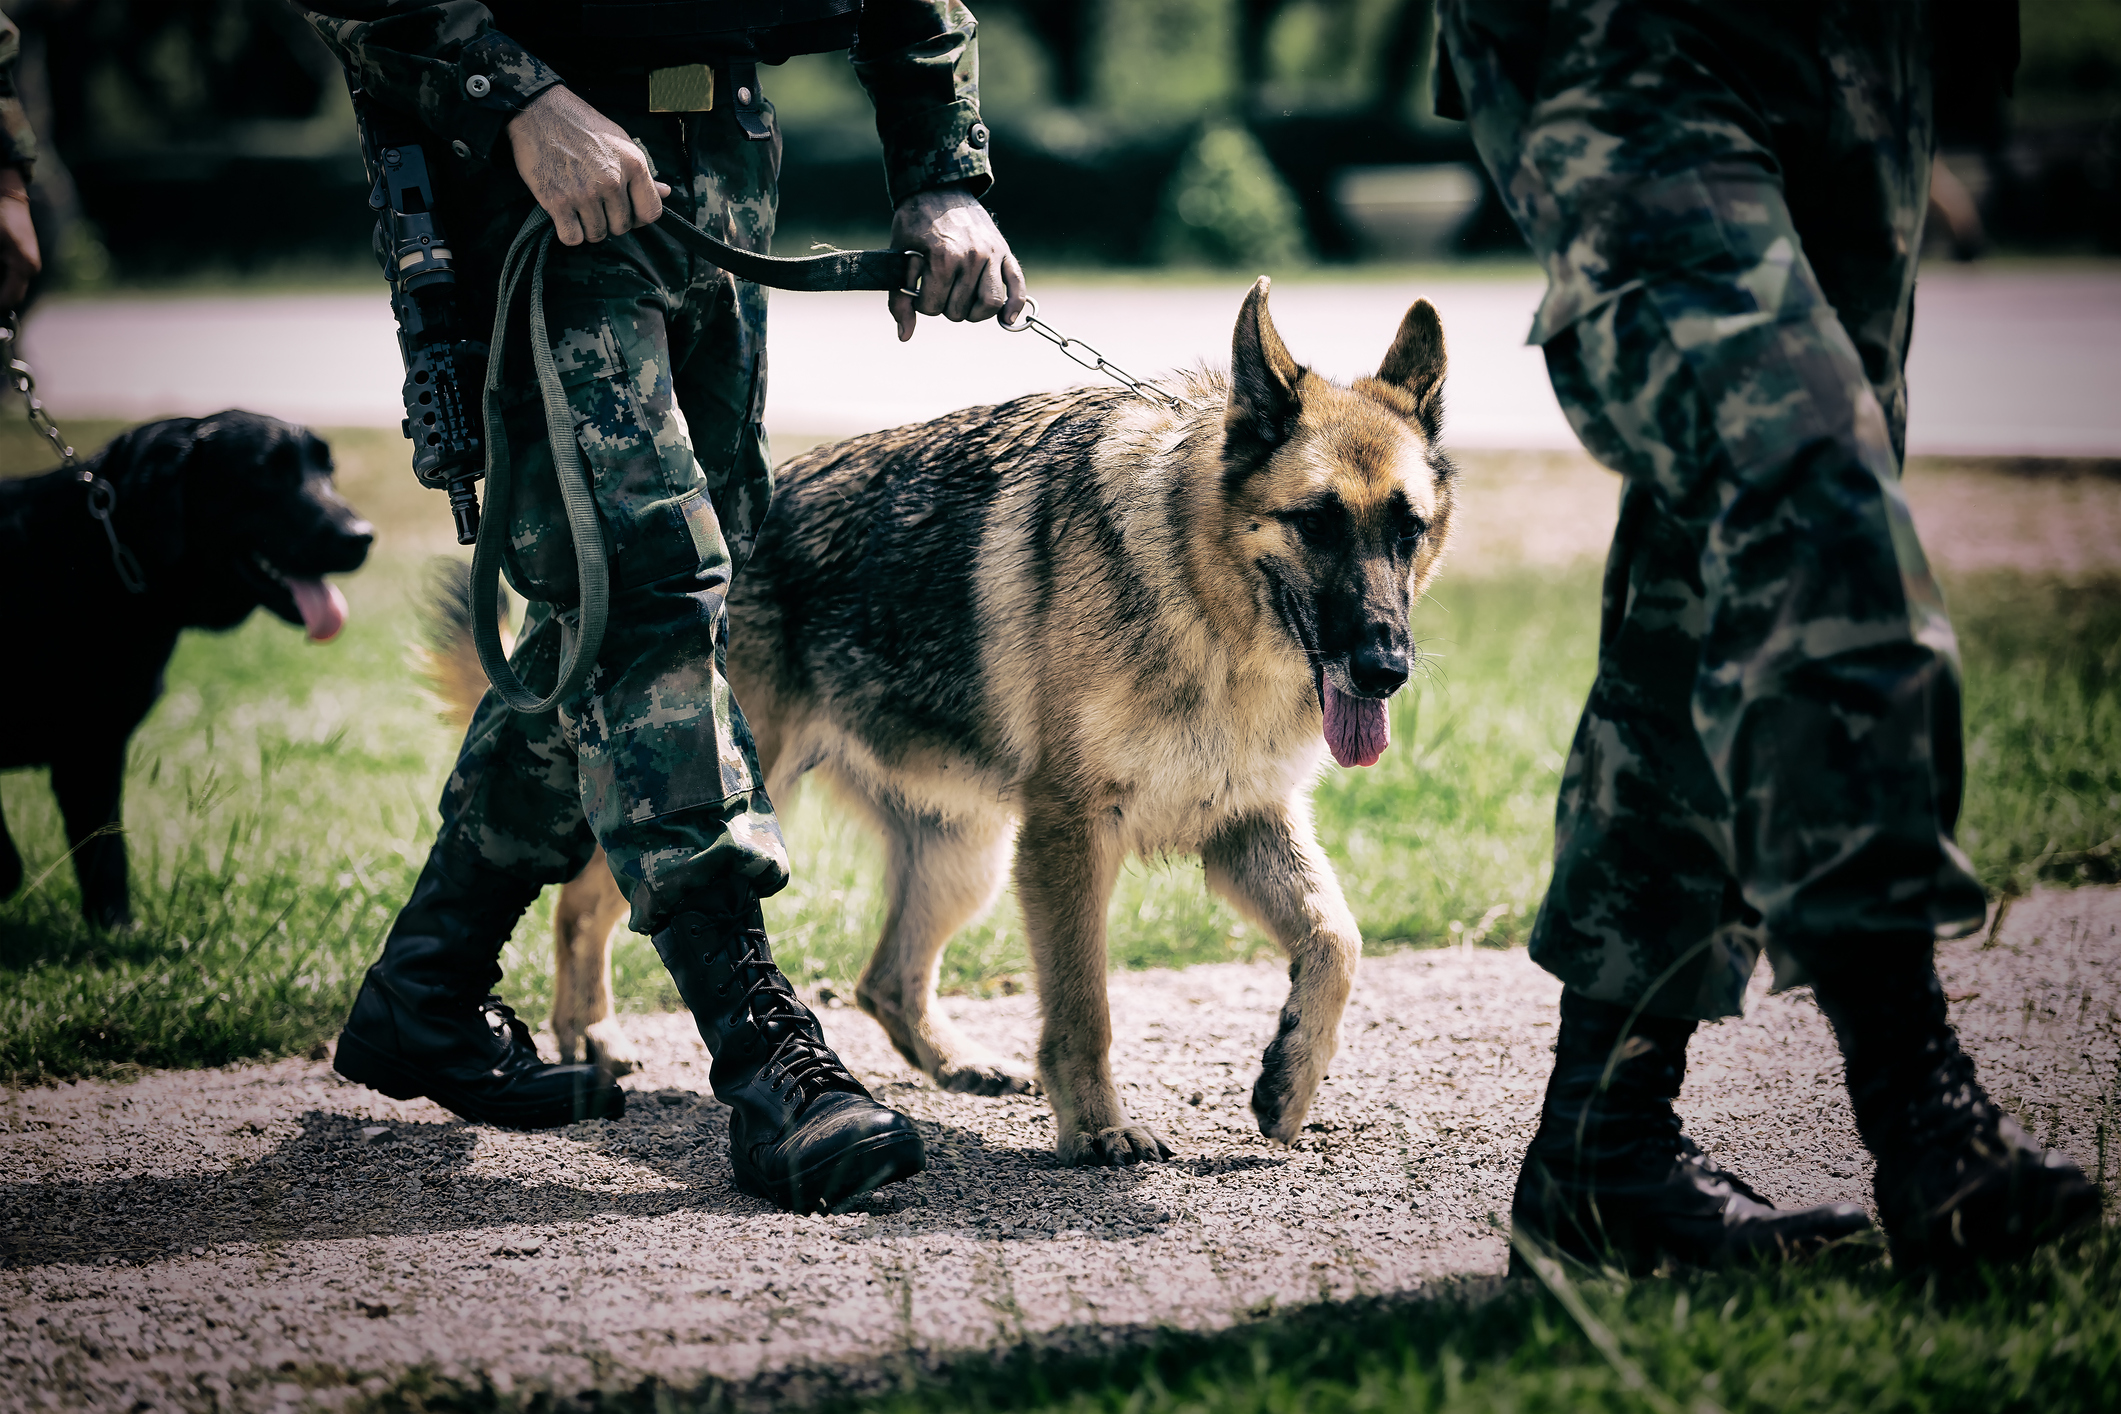 Army arriving with trained dogs